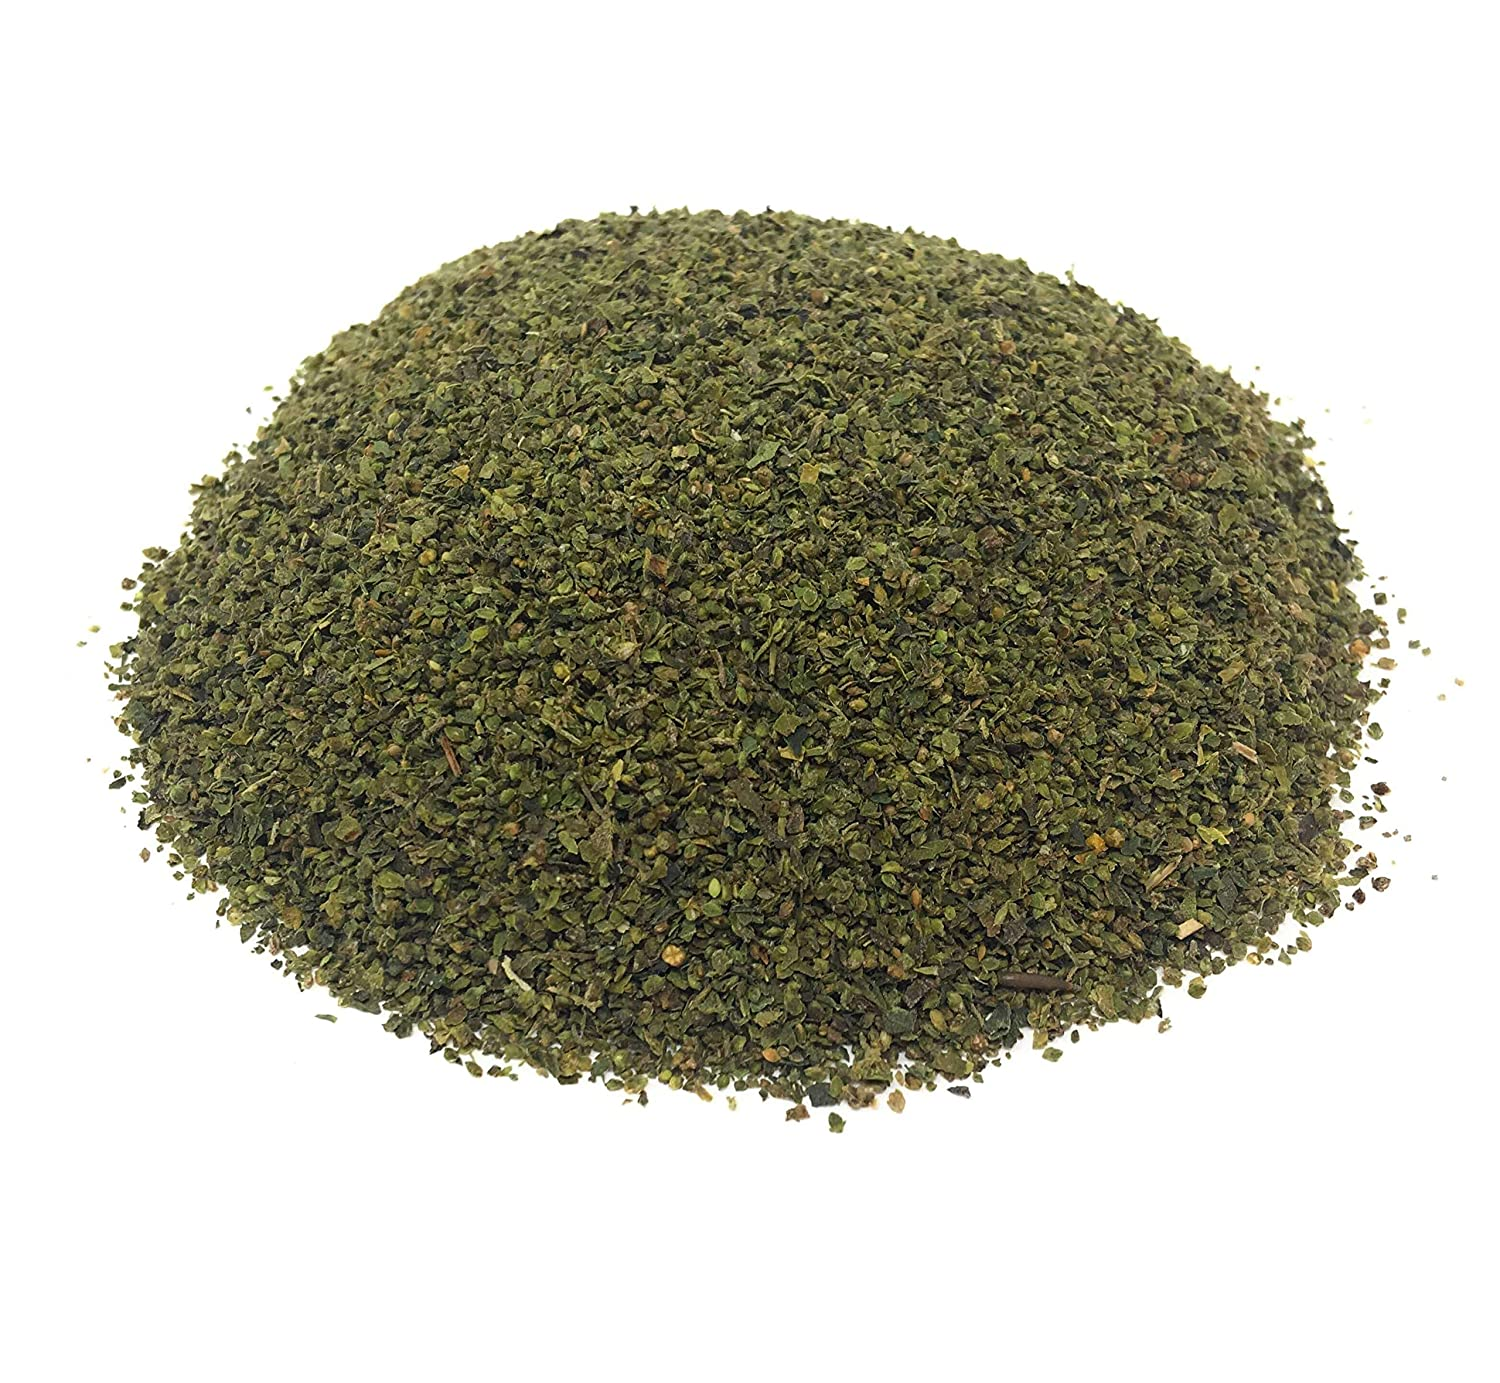 Stinging Nettle Seeds - Treasure of Protein Source, 0.7oz ...